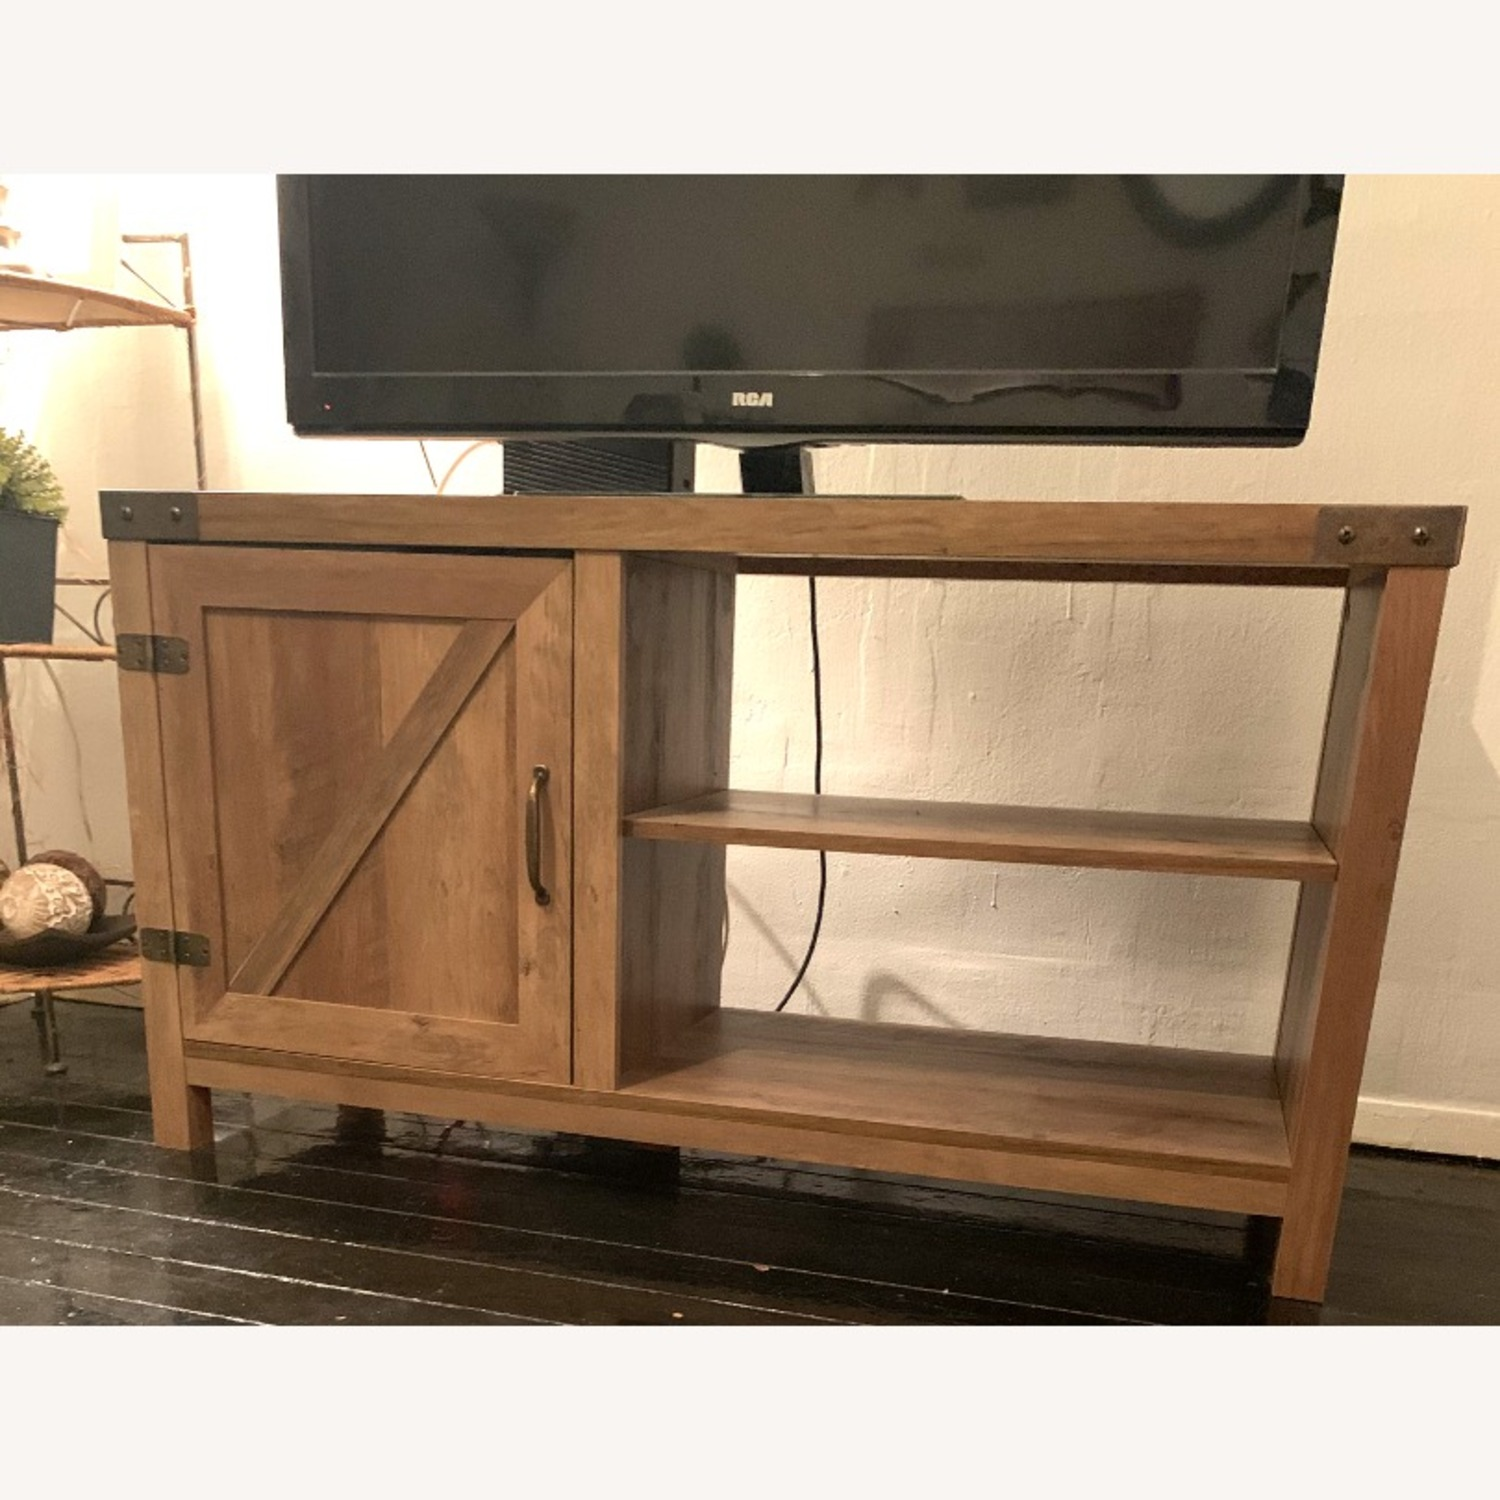 Pier 1 Rustic Farmhouse Barn Door TV Stand - image-2